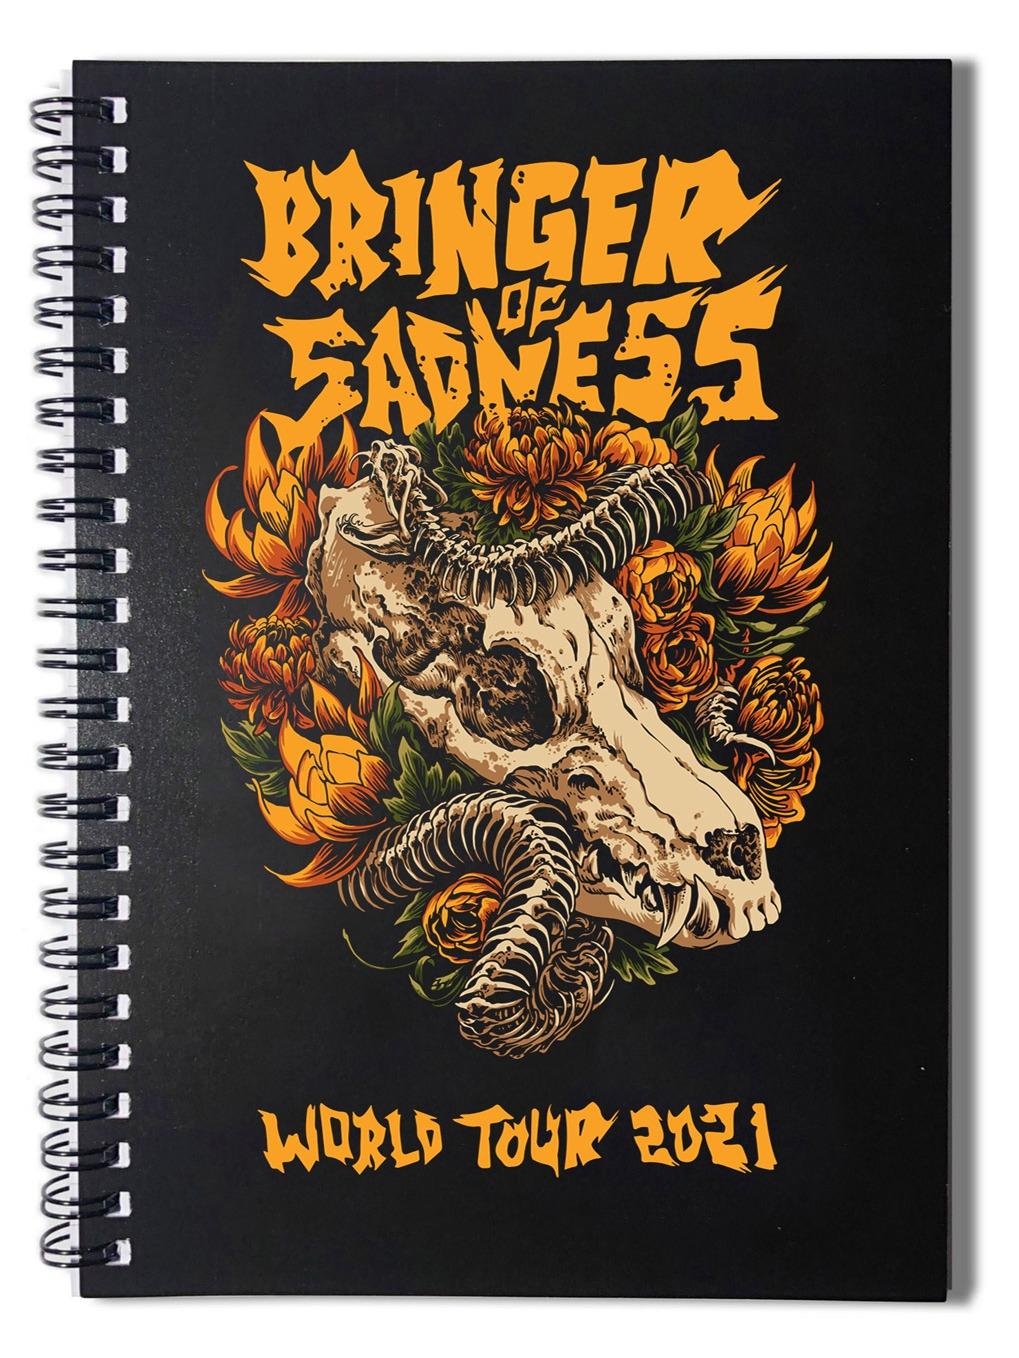 Bringer of Sadness World Tour 2021 Notebook product image (1)